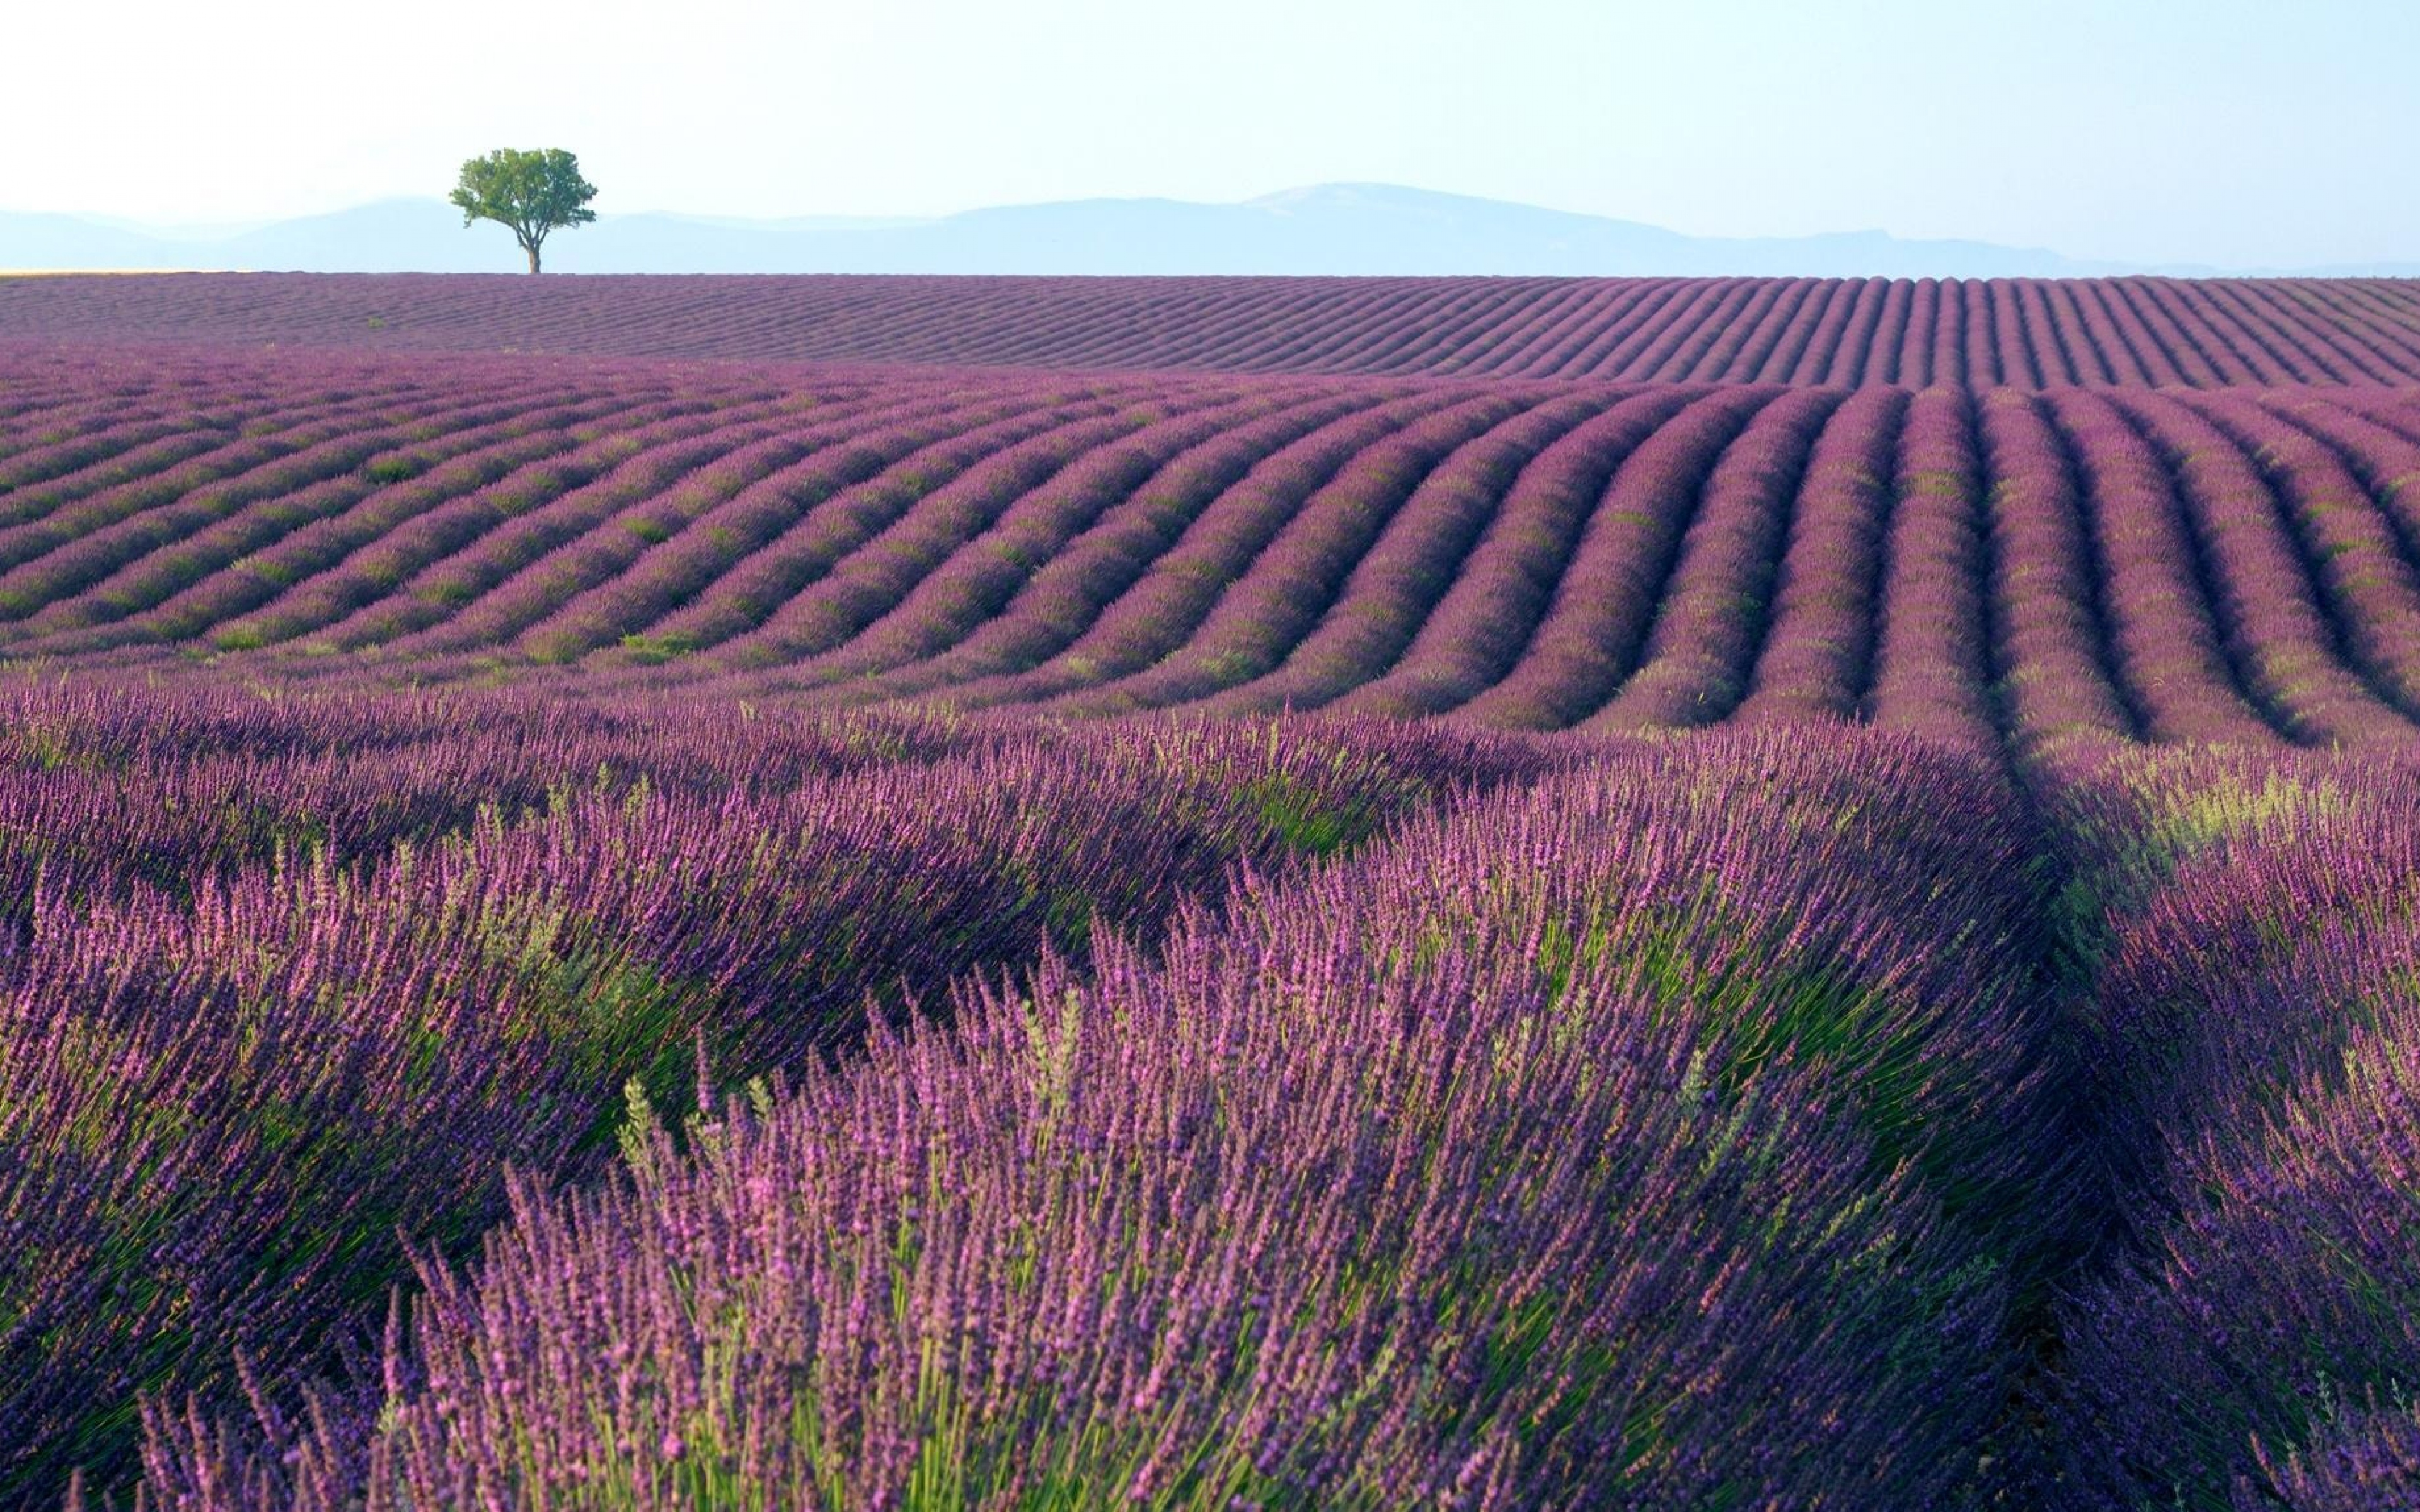 Top HDQ Free Lavender Images, Wallpapers.